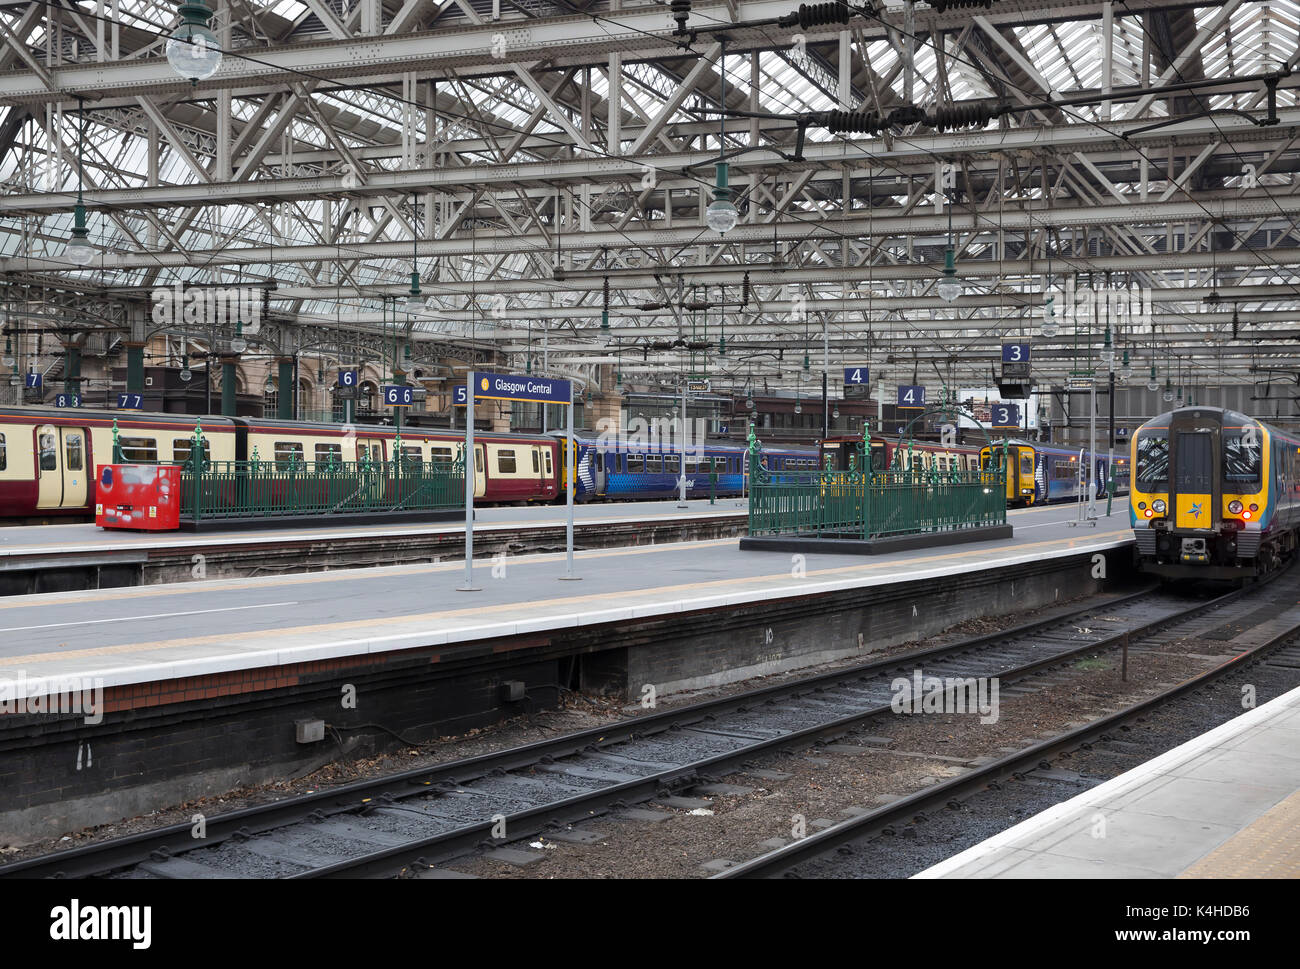 Train stopped at a platform in Glasgow Central Station Scotland - Stock Image